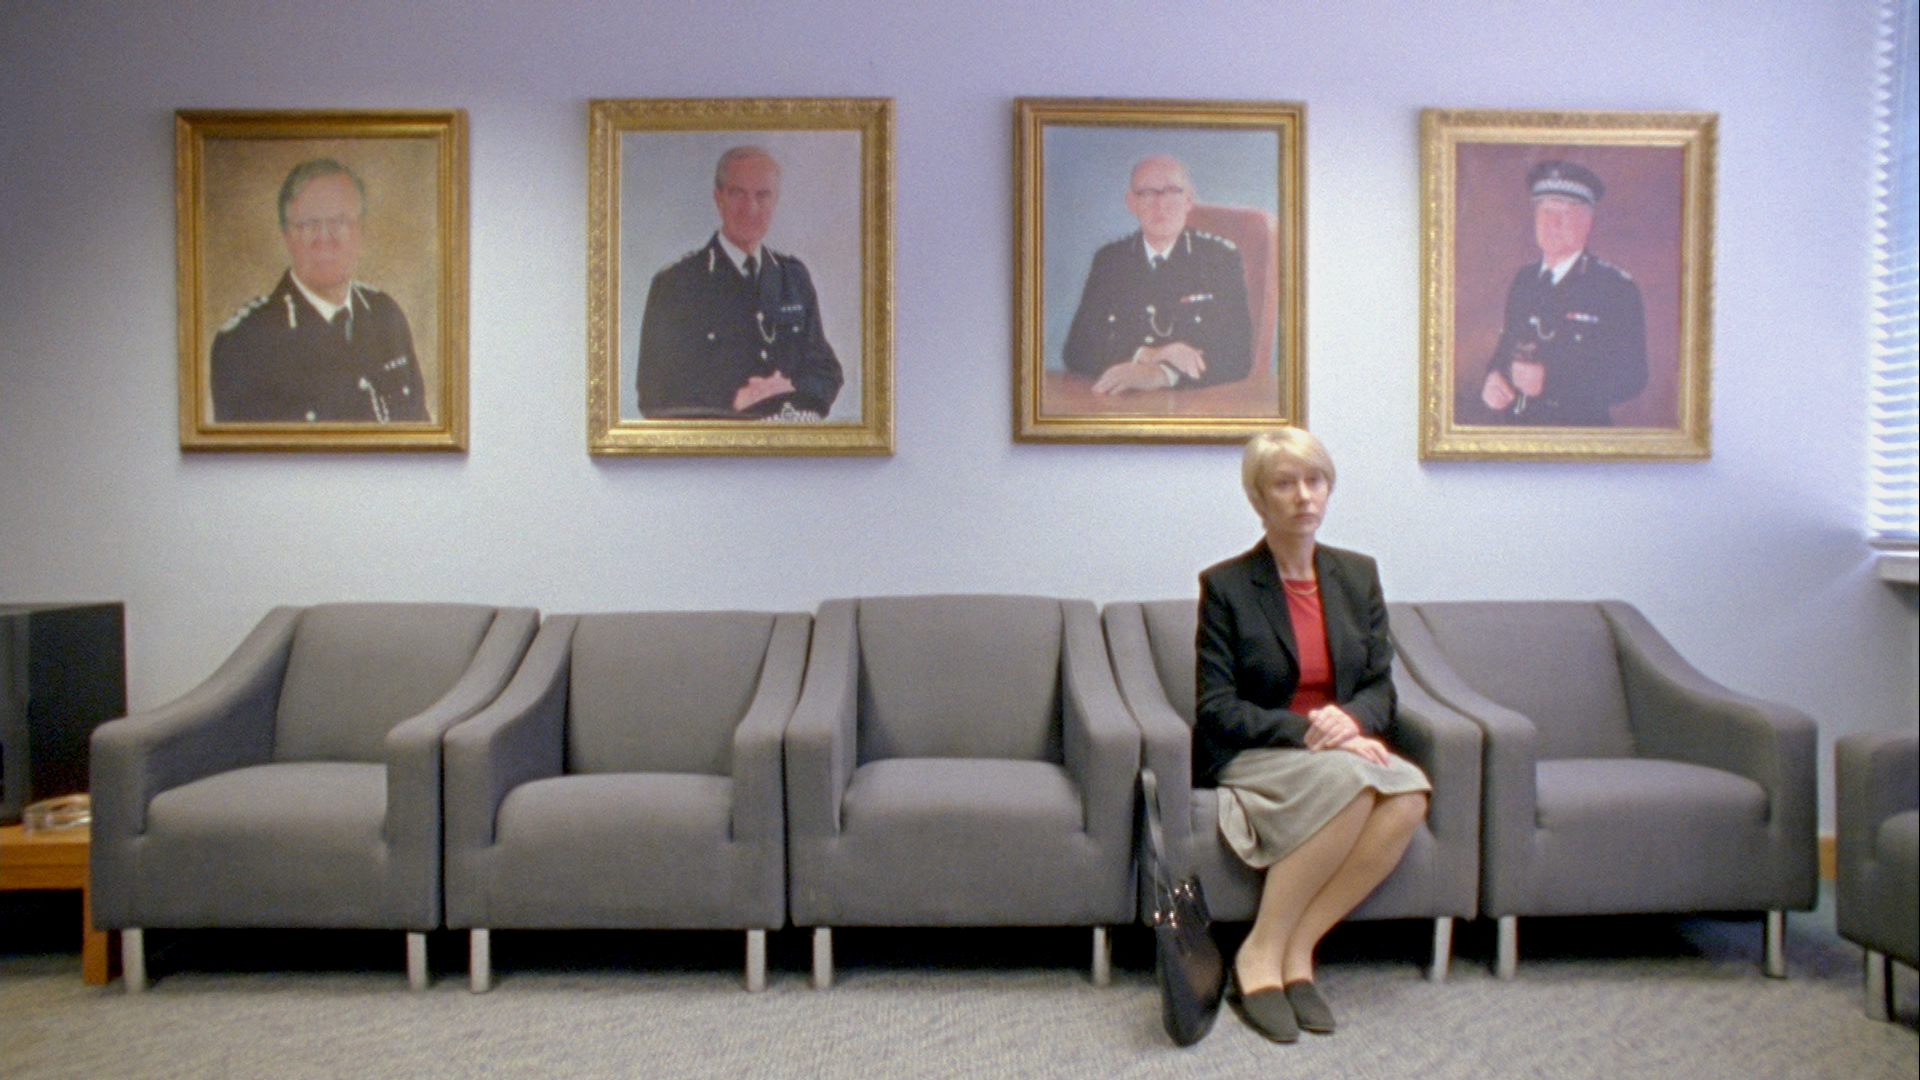 Helen Mirren, as Detective Jane Tennison in Prime Suspect, sits alone in a waiting room. Above her hang the portraits of four male police officials.